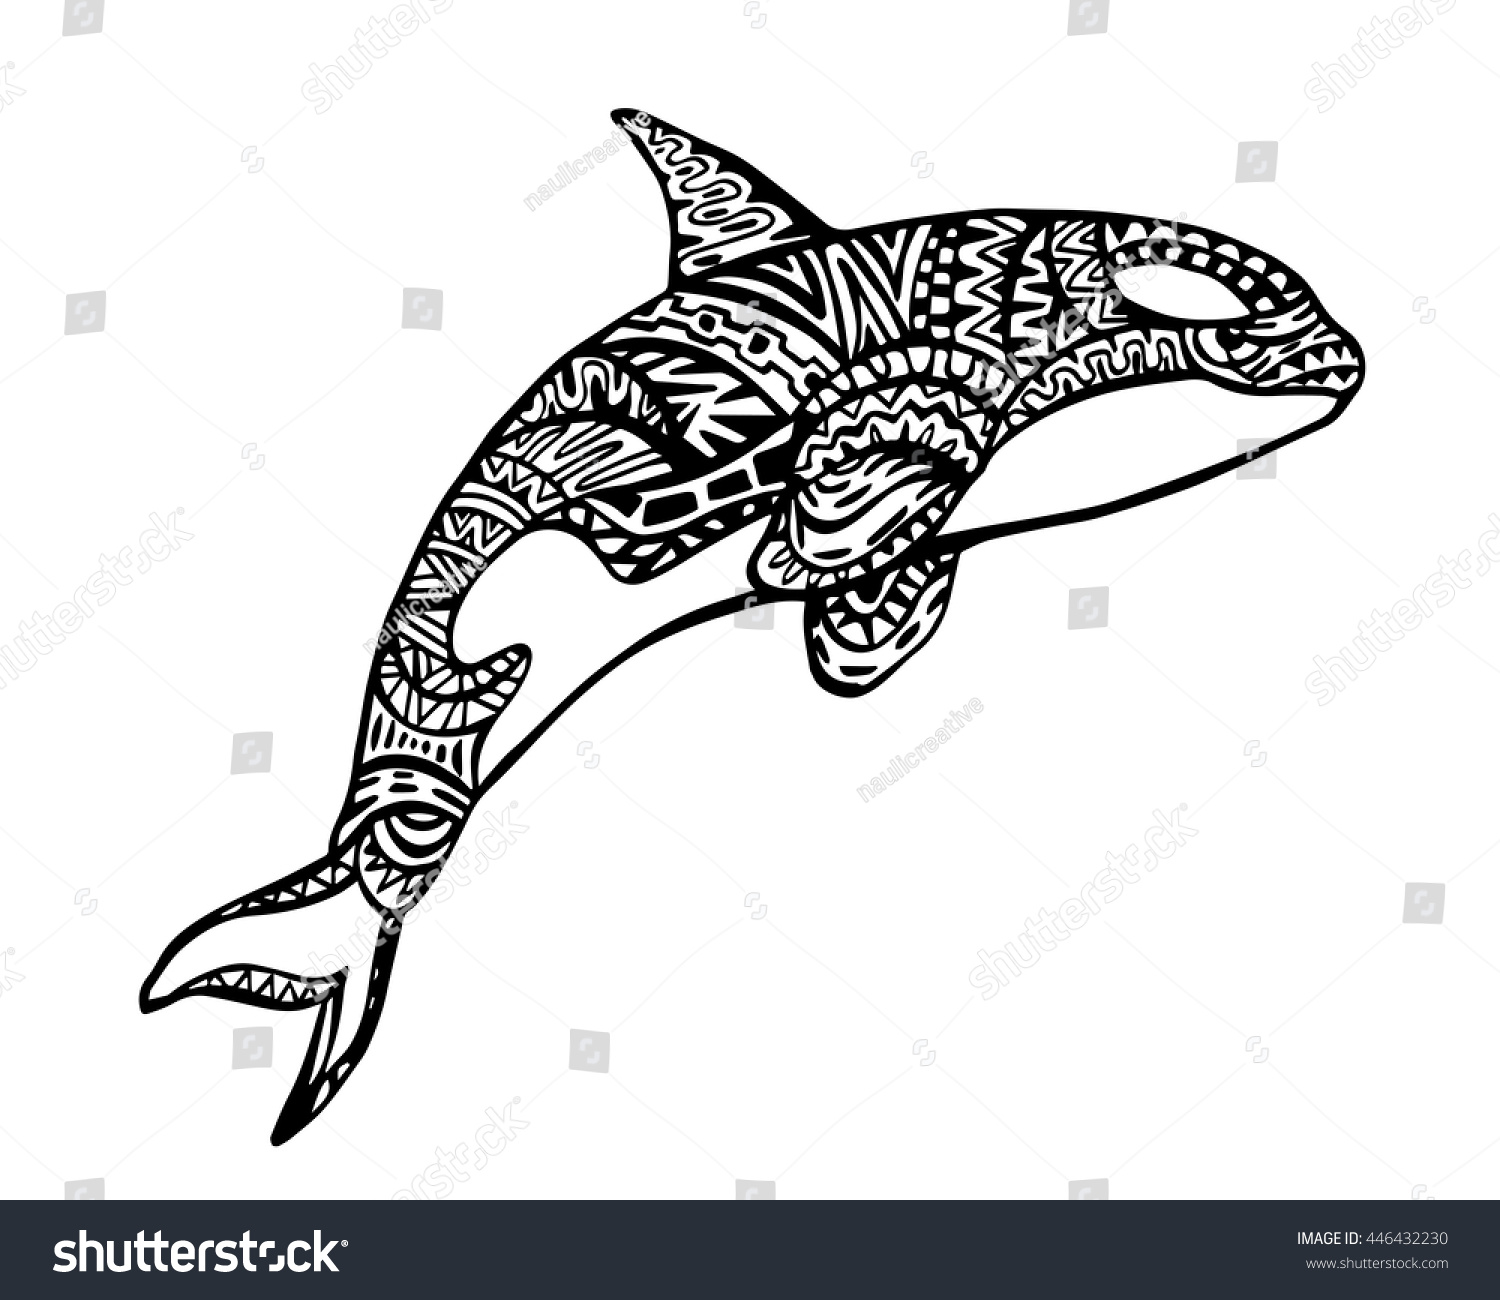 Ethnic animal doodle detail pattern killer whale zentangle illustration